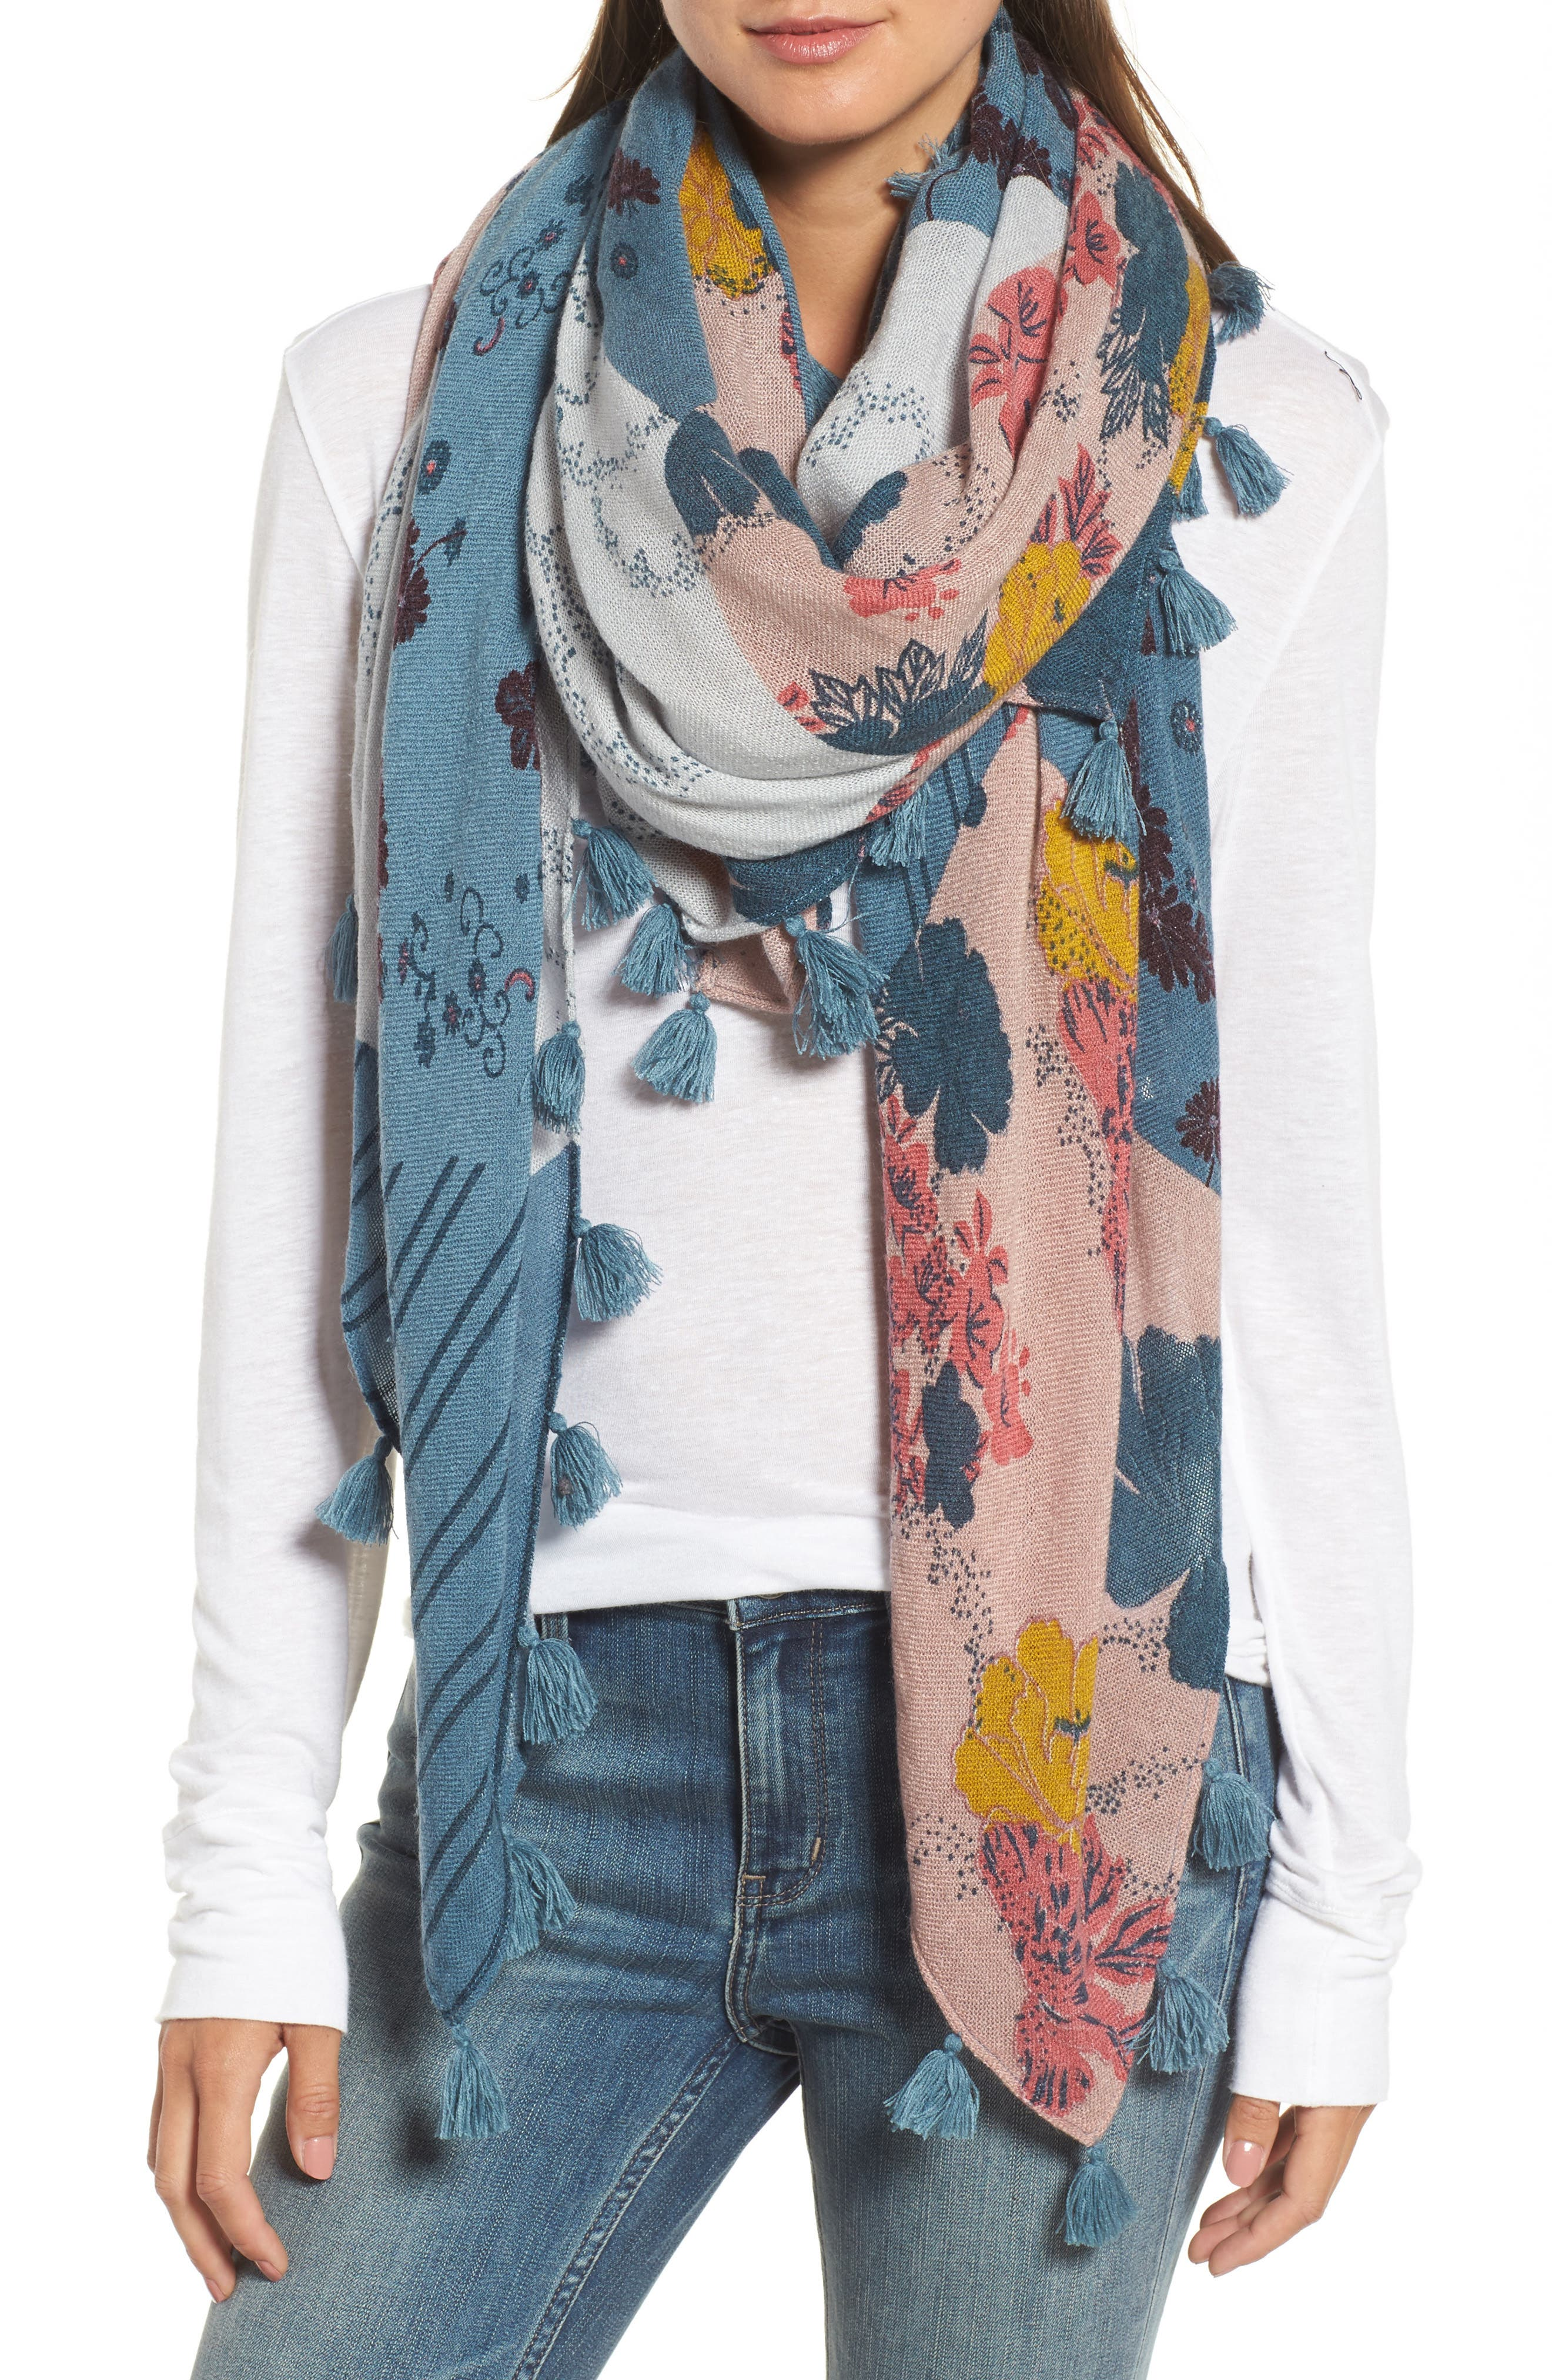 Main Image - Treasure & Bond Floral Fantasy Tassel Scarf